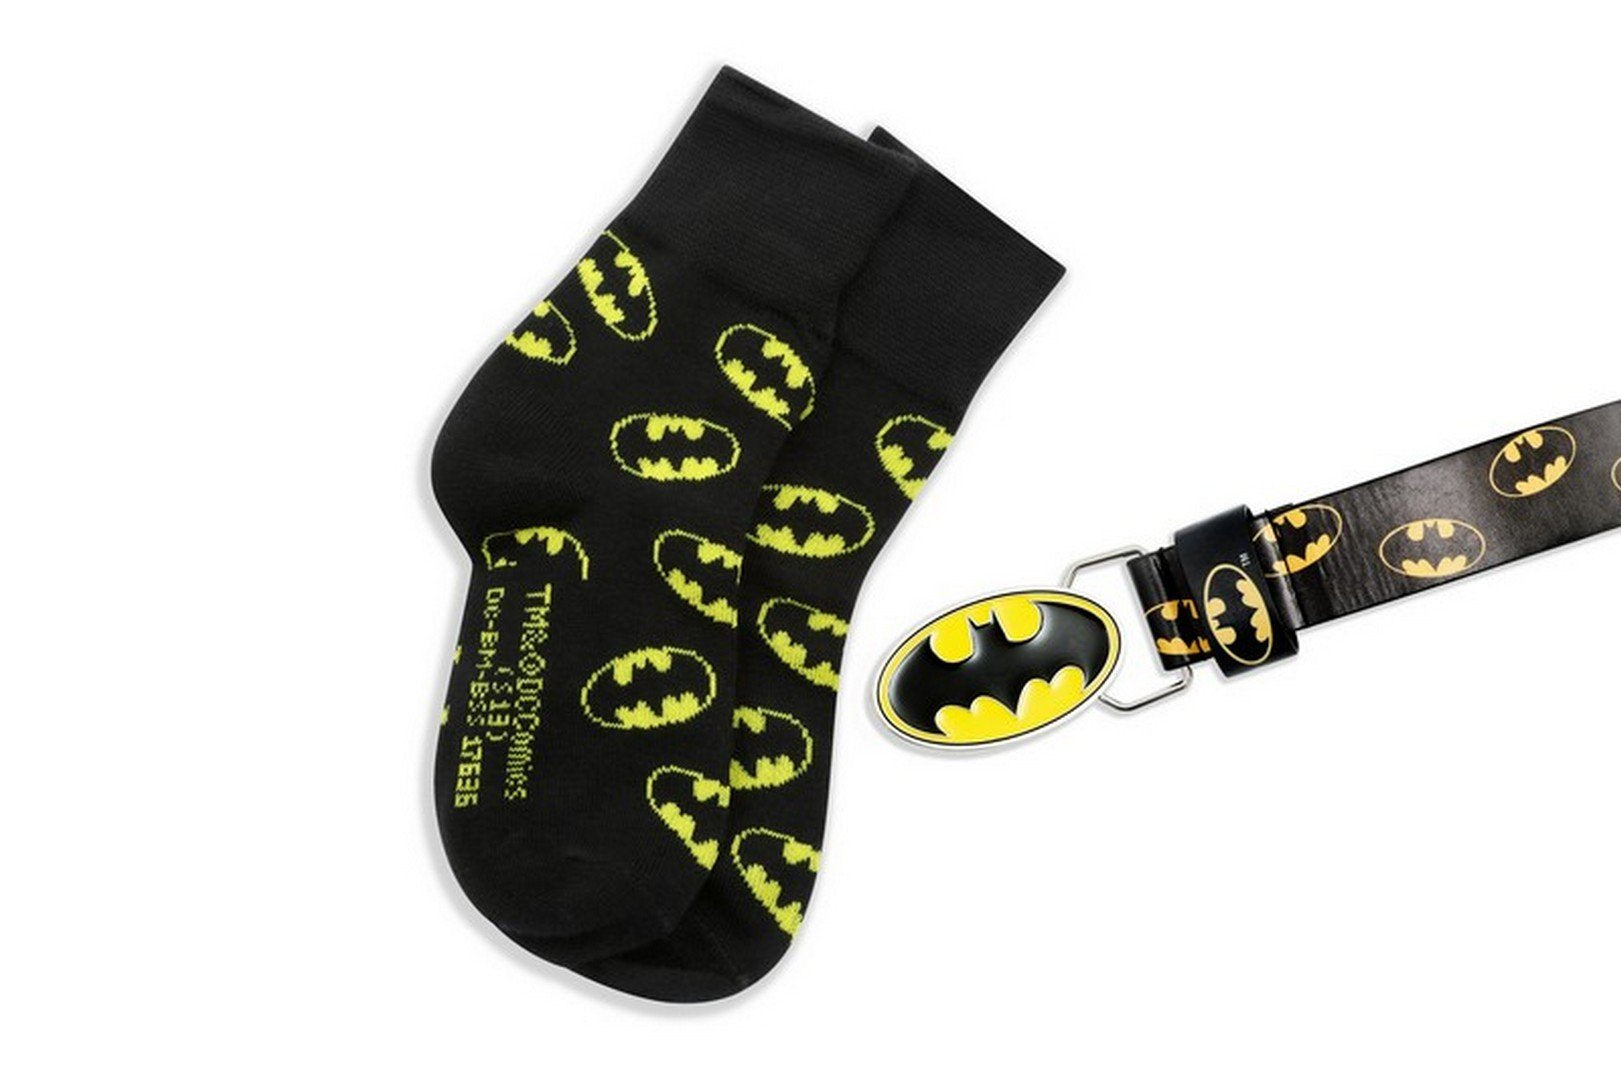 DC Comics Batman Belt & Sock Set 3-6yrs/7-12yrs